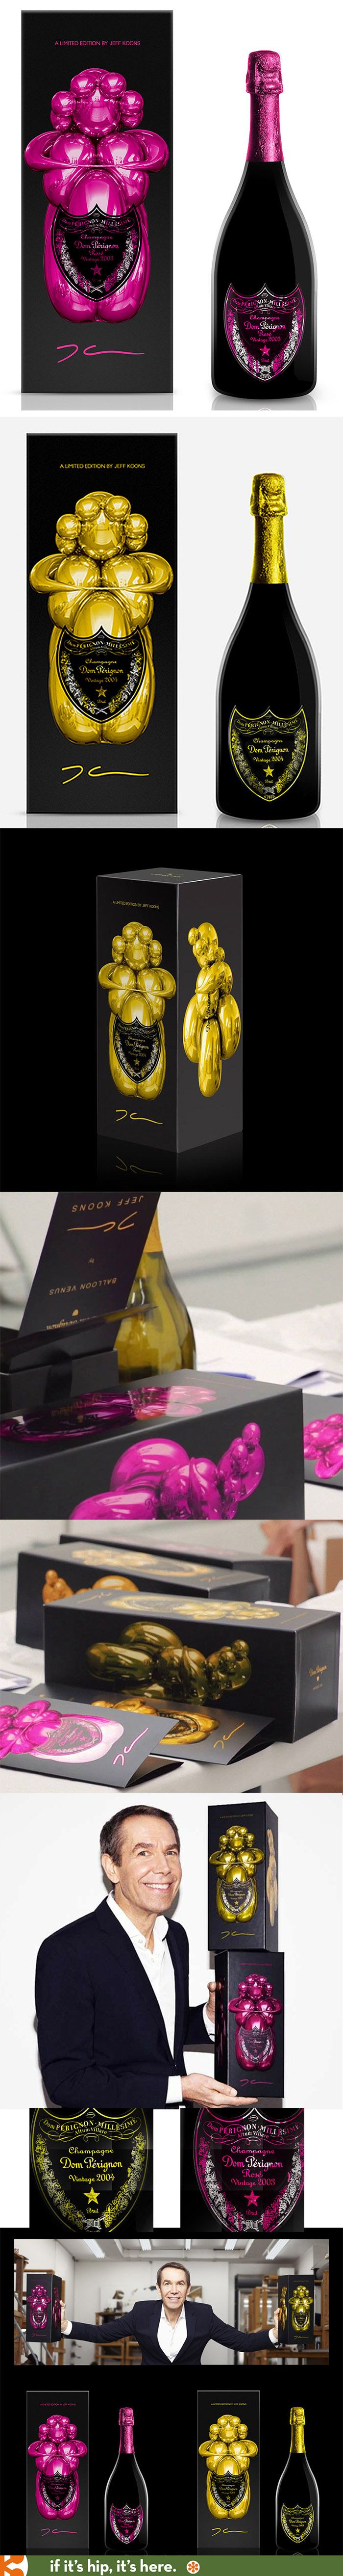 The Jeff Koons X Dom Perignon gift boxes and bottles PD #champagner